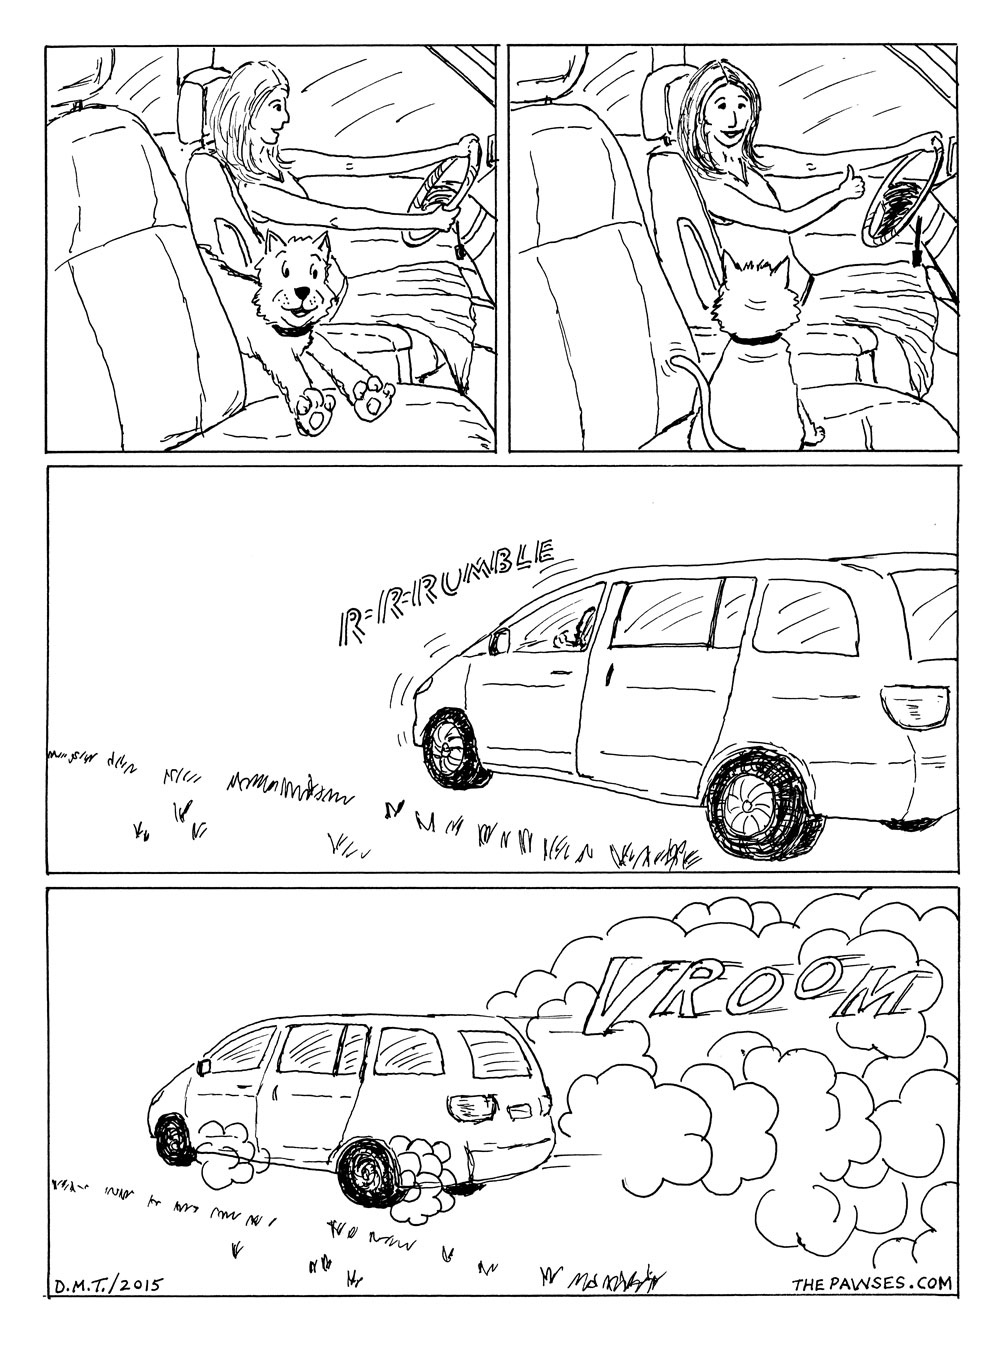 Driver, page 4